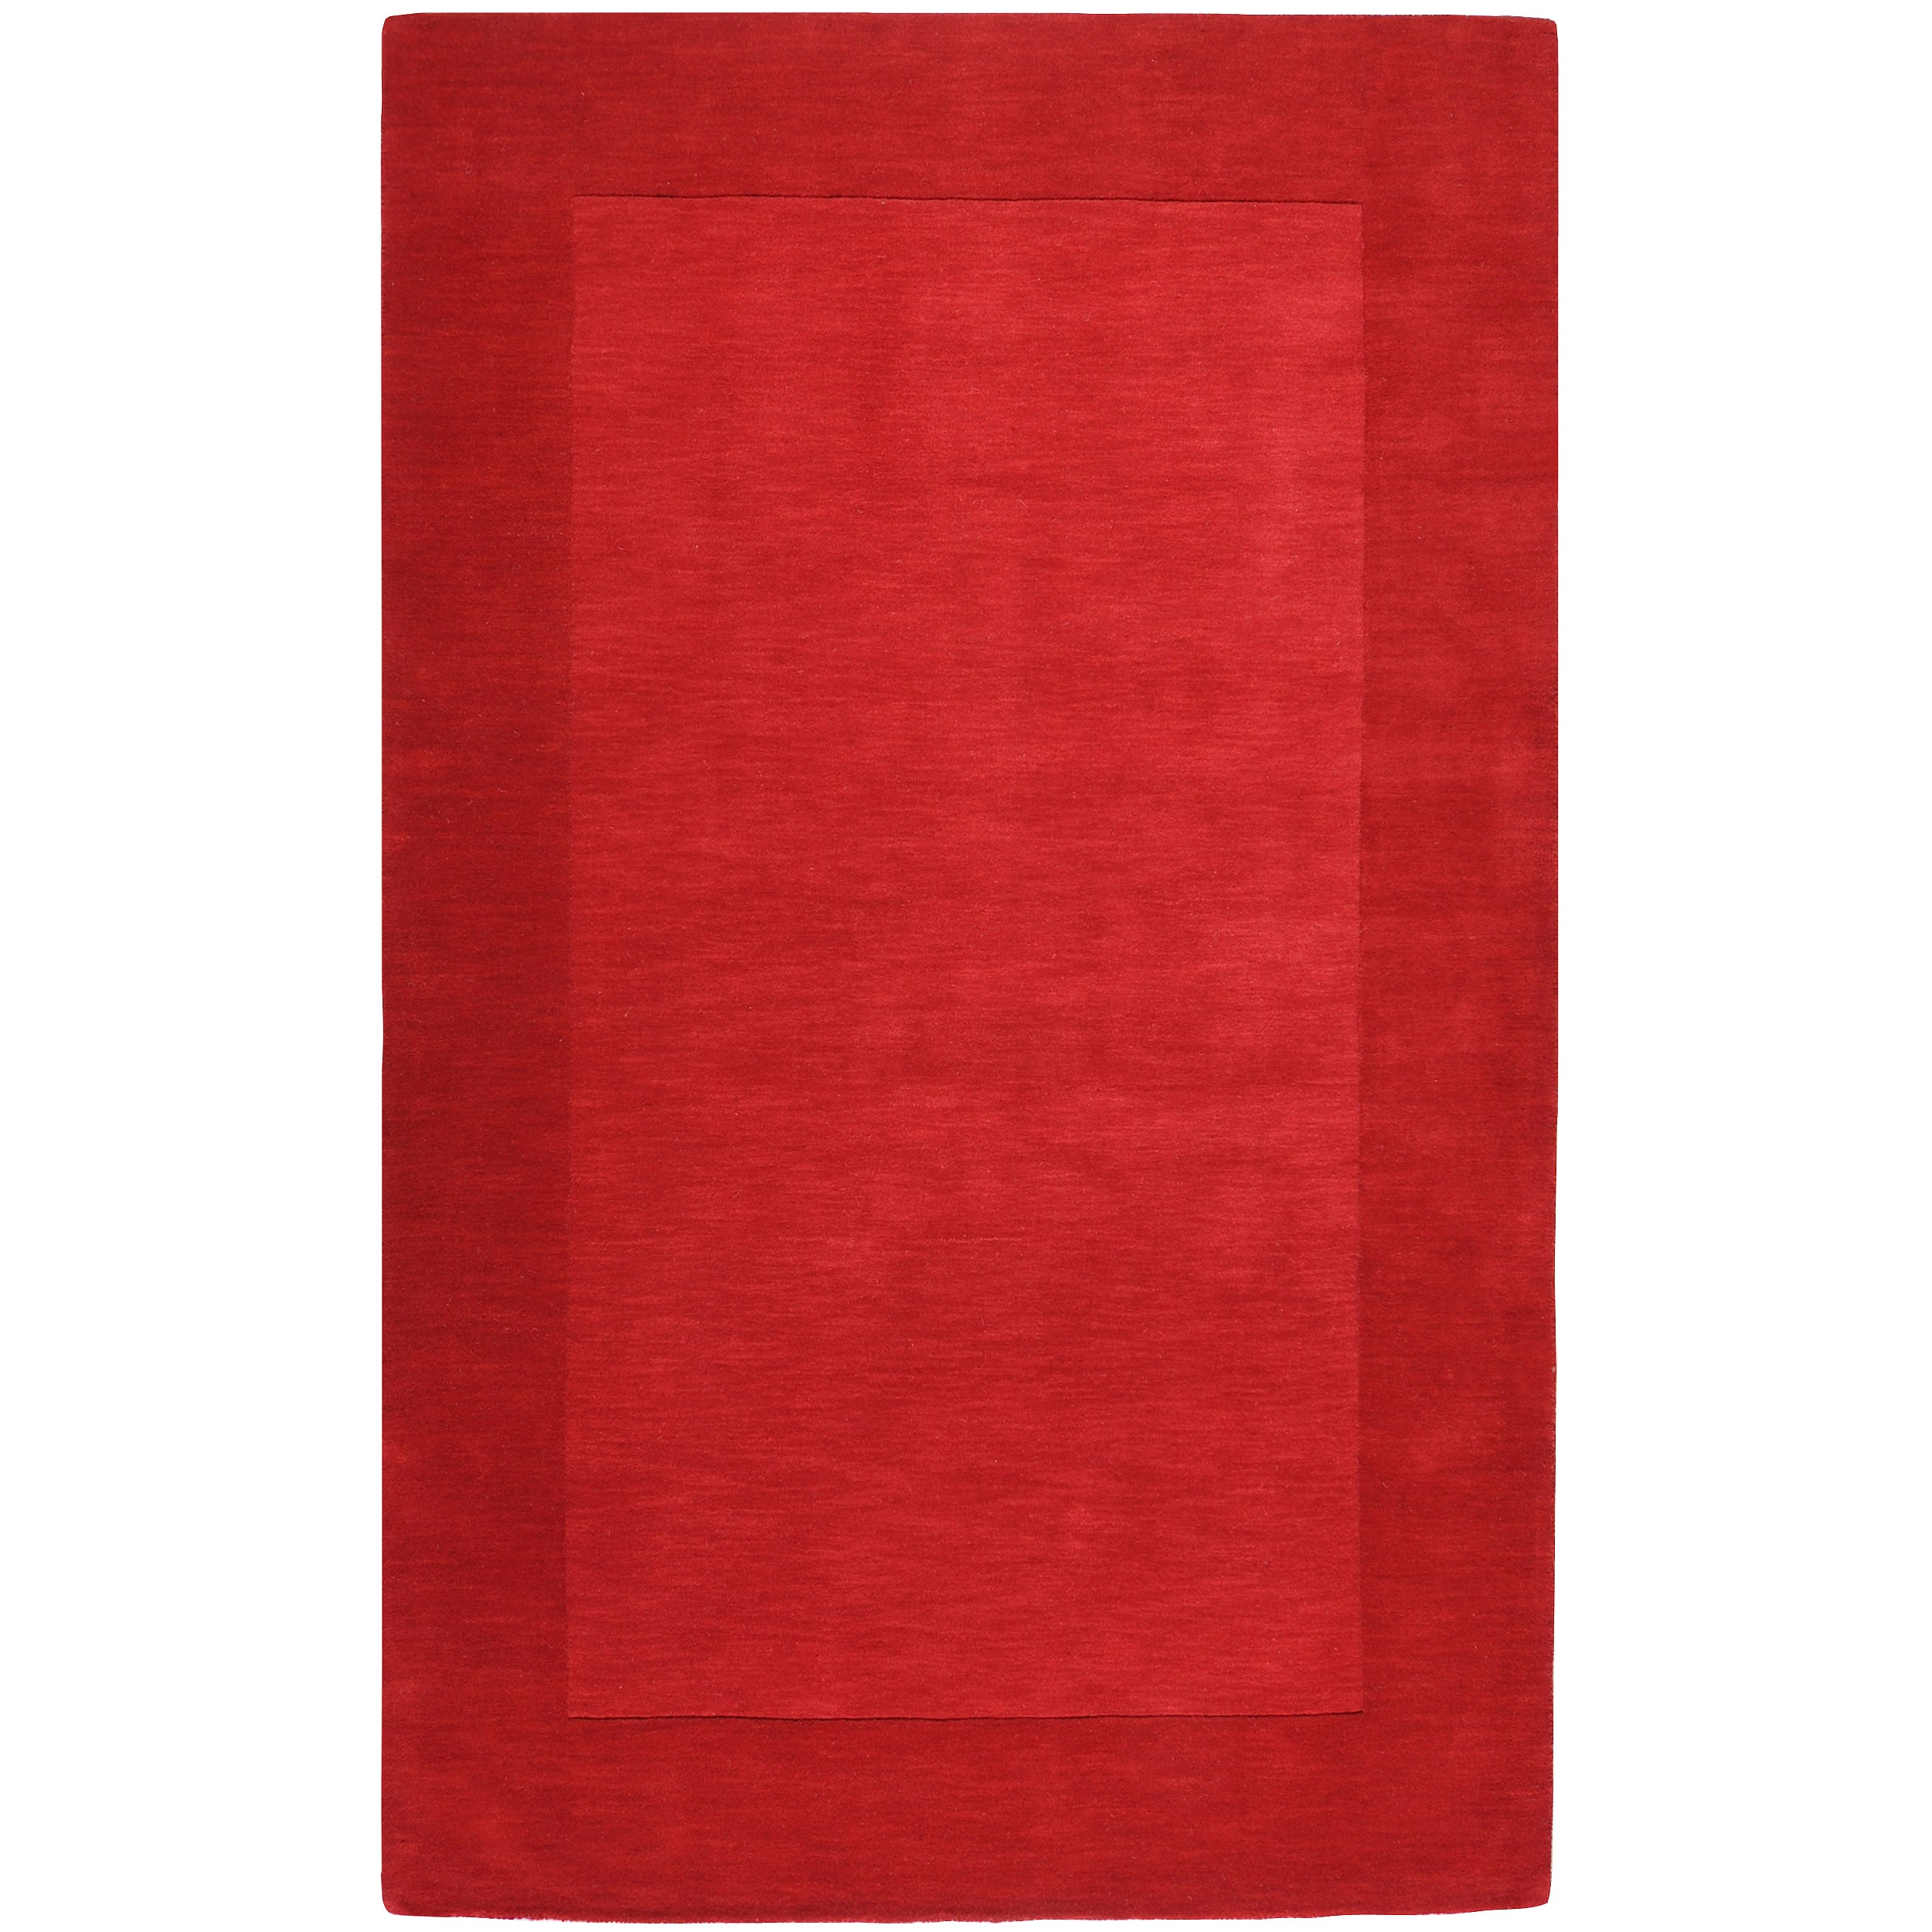 Hand-crafted Solid Red Tone-On-tone Bordered Mantra Wool Area Rug (6' x 9')